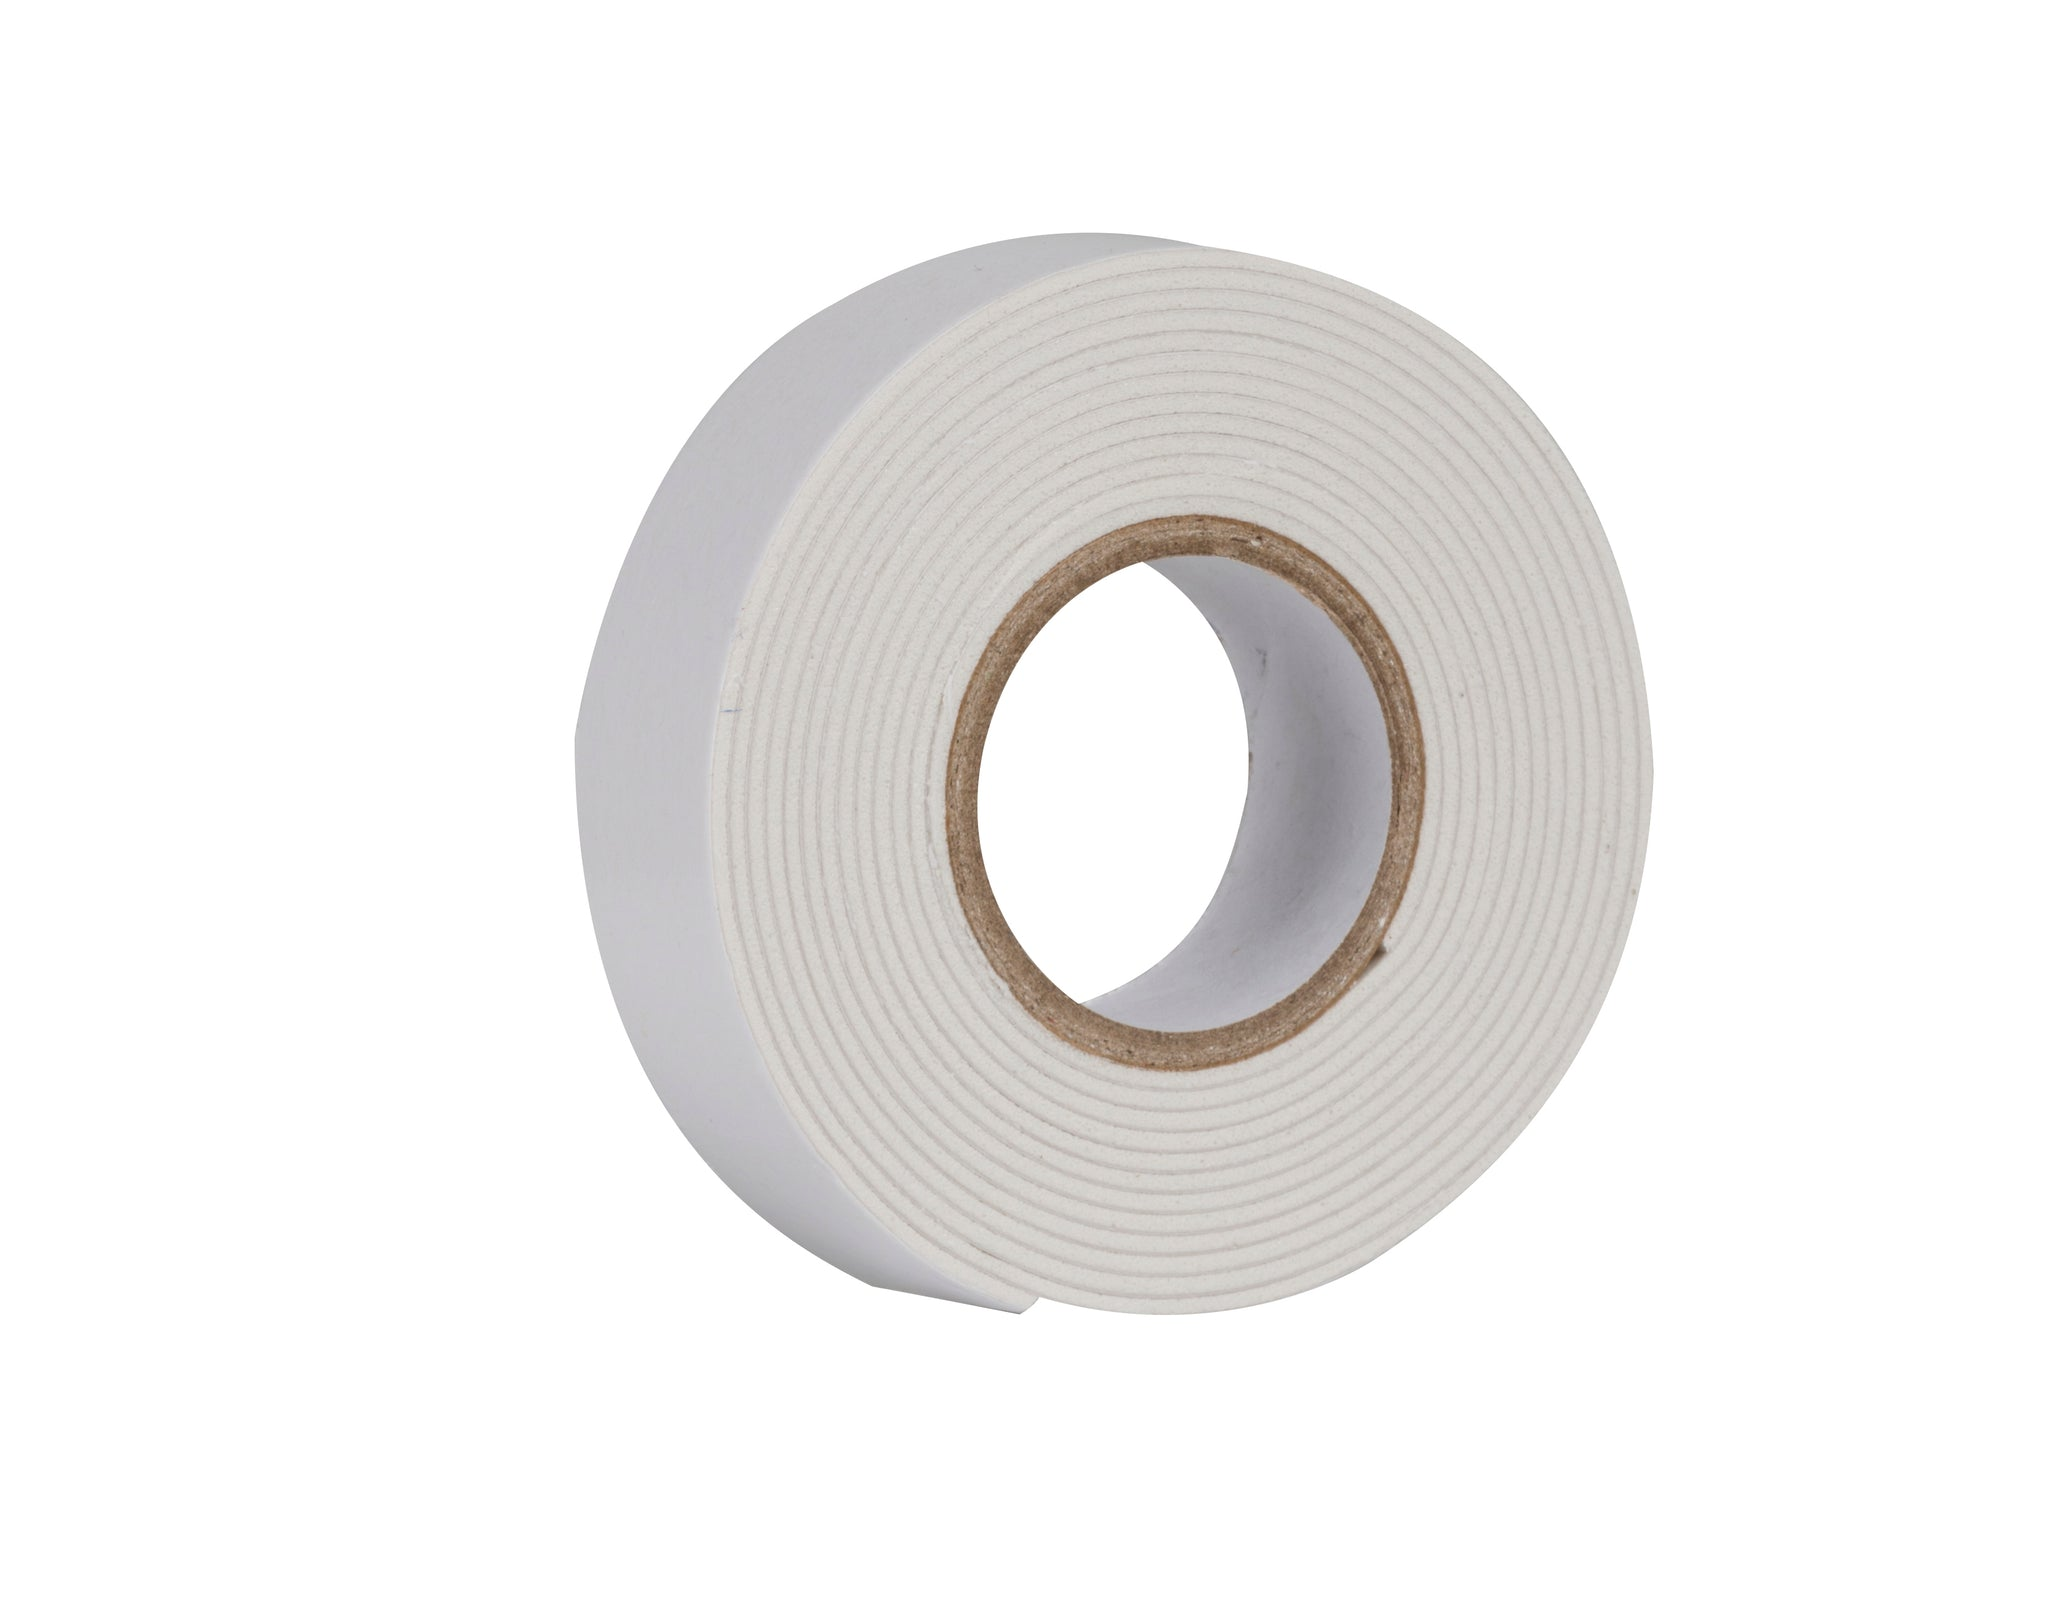 Tape dubbelzijdig 2,3mtr 19mm